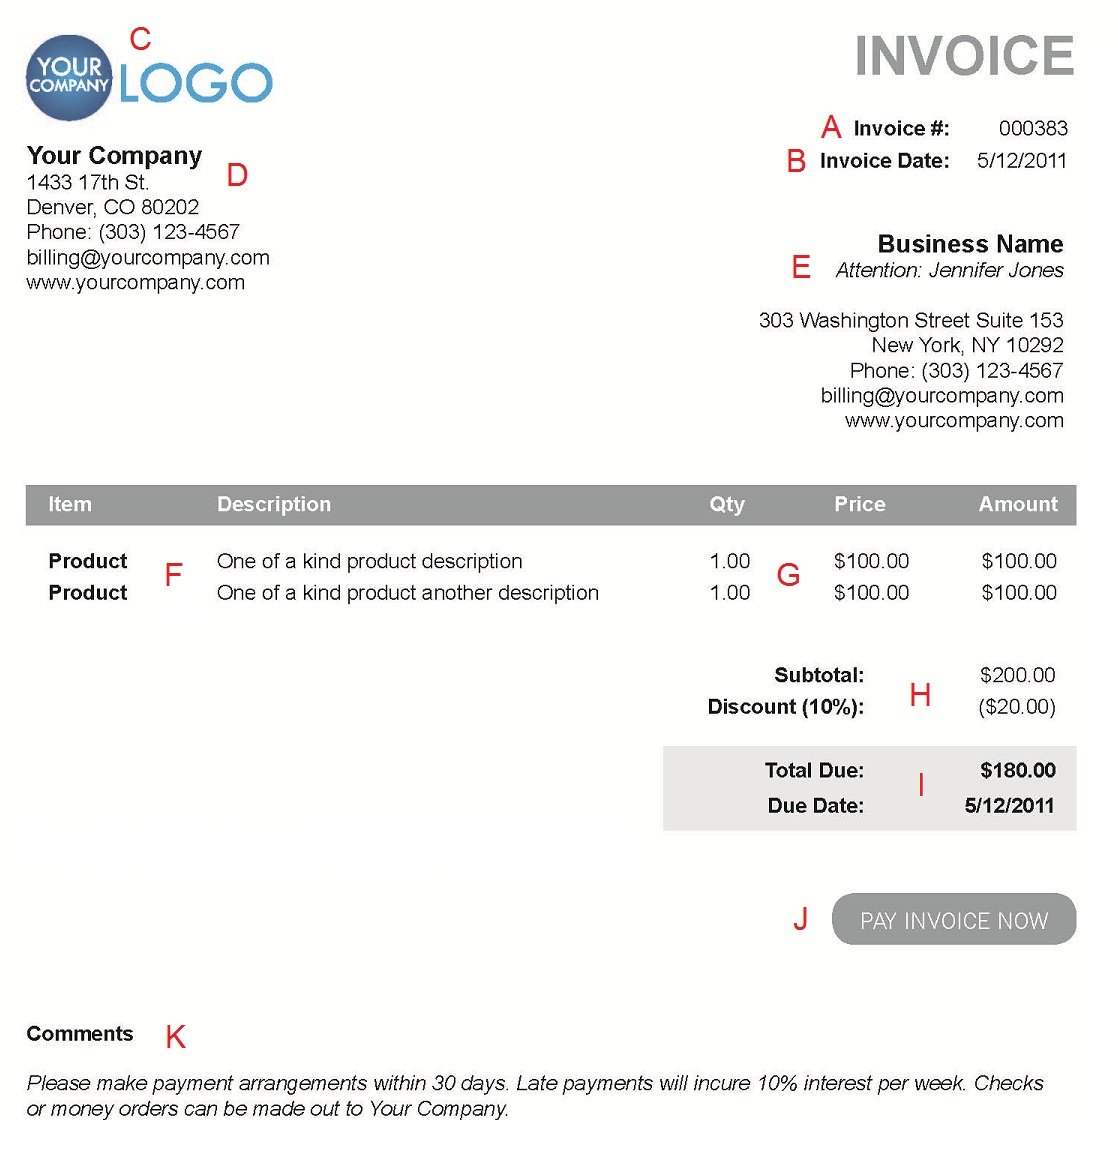 Gpwaus  Pleasing The  Different Sections Of An Electronic Payment Invoice With Hot A  With Amazing Receipt Of Lic Premium Paid Also Cra Tax Receipts In Addition Target Refund Policy With Receipt And Goods Receipt Note As Well As Receipt Printing Software Free Download Additionally Pay Receipt Template From Paysimplecom With Gpwaus  Hot The  Different Sections Of An Electronic Payment Invoice With Amazing A  And Pleasing Receipt Of Lic Premium Paid Also Cra Tax Receipts In Addition Target Refund Policy With Receipt From Paysimplecom